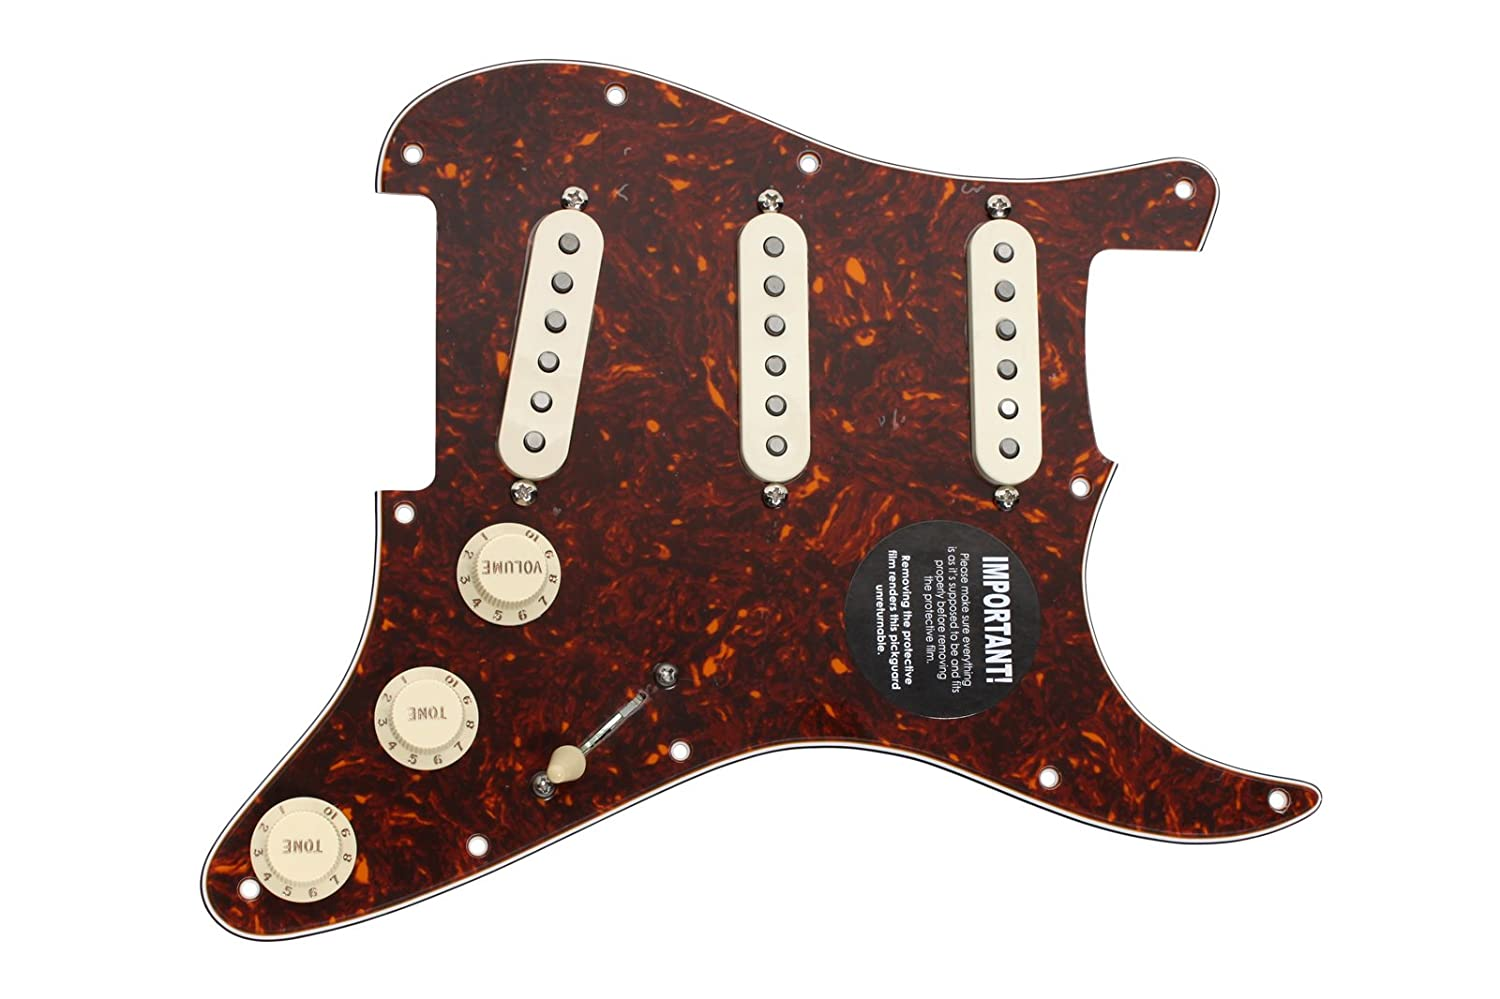 Dimarzio Area 58 61 Lincoln Brewster Loaded Texas Special Strat Pickups Wiring Diagram Pickguard Prewired To Aw Musical Instruments